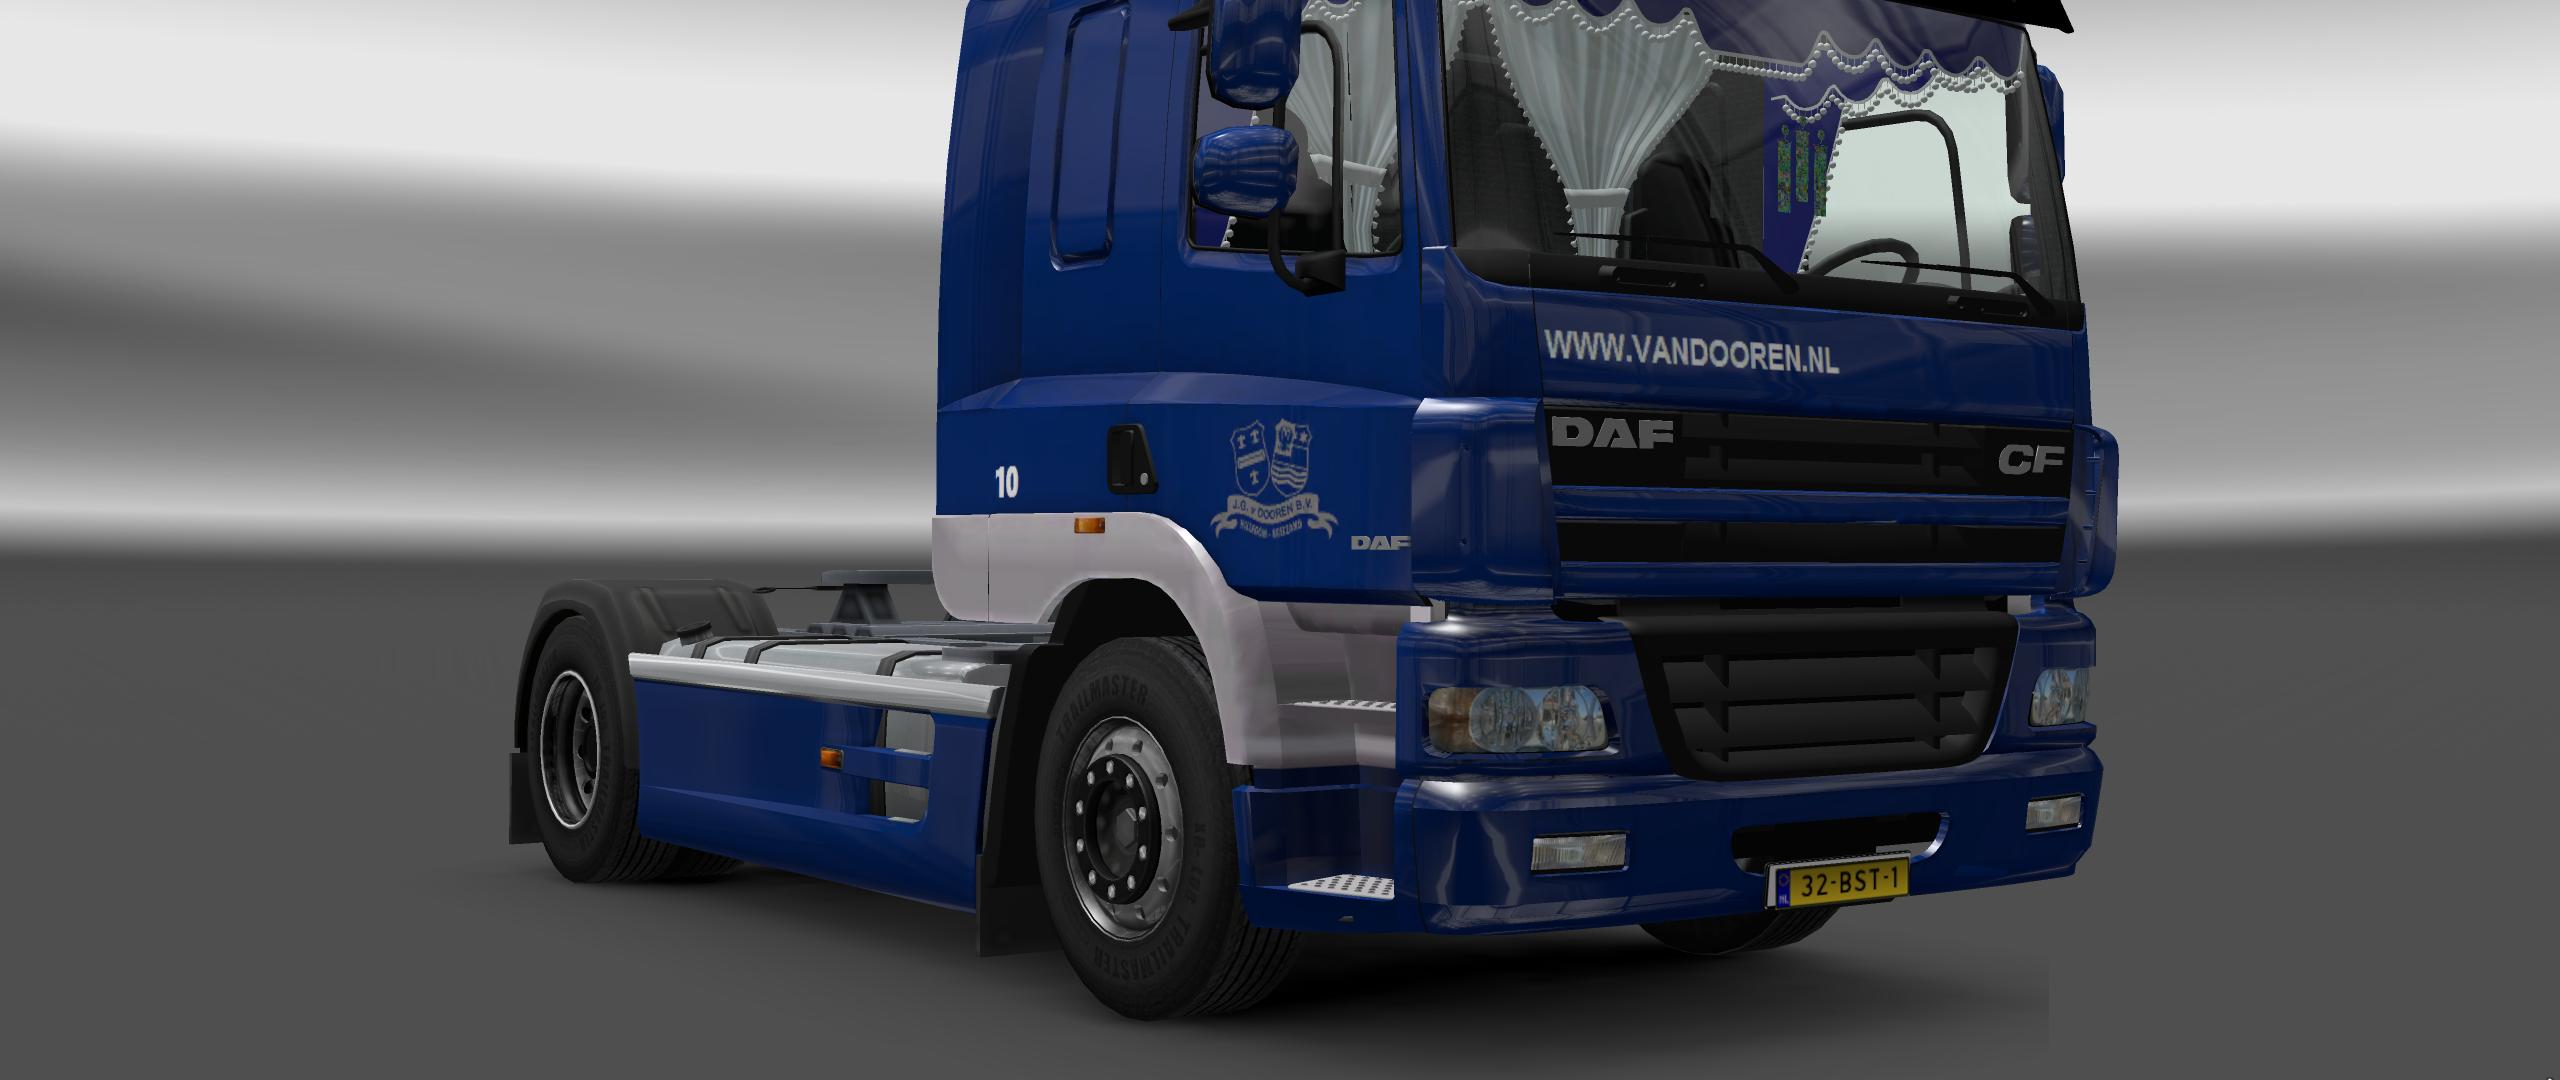 van-dooren-transport-pack-1-20-x_4